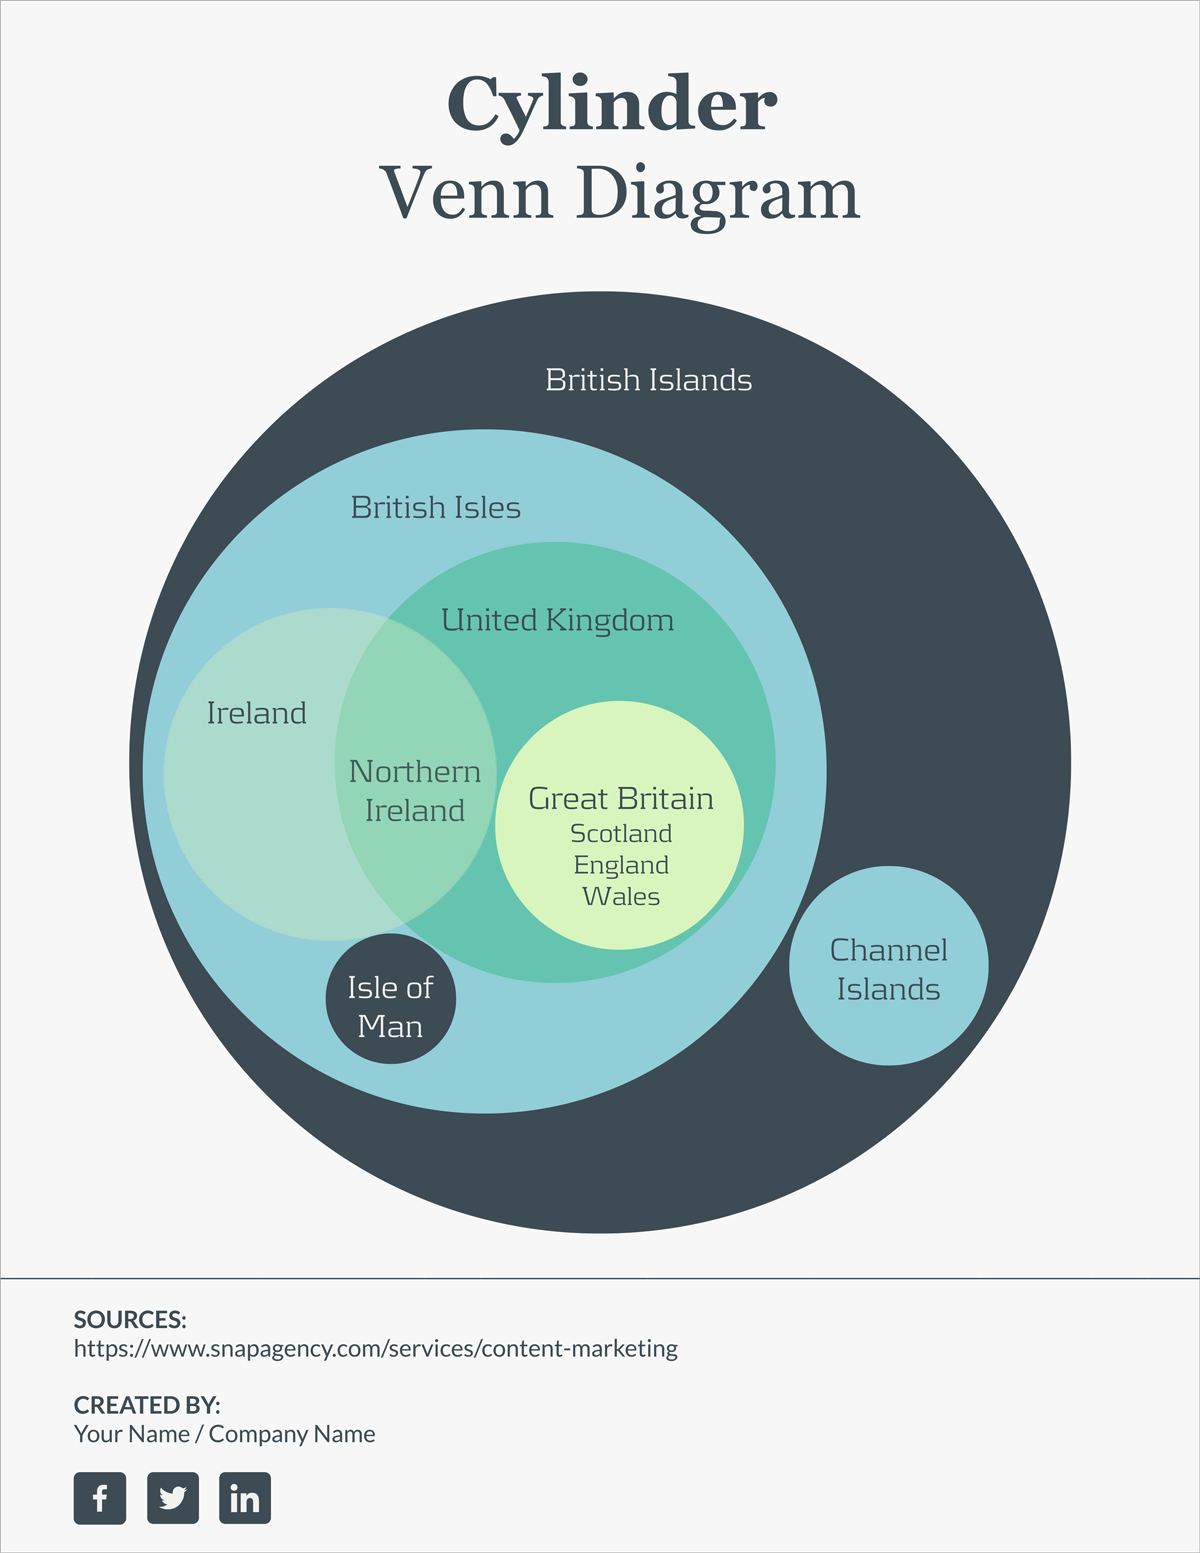 Free venn diagram template edit online and download visual multi layered venn diagram template pooptronica Choice Image